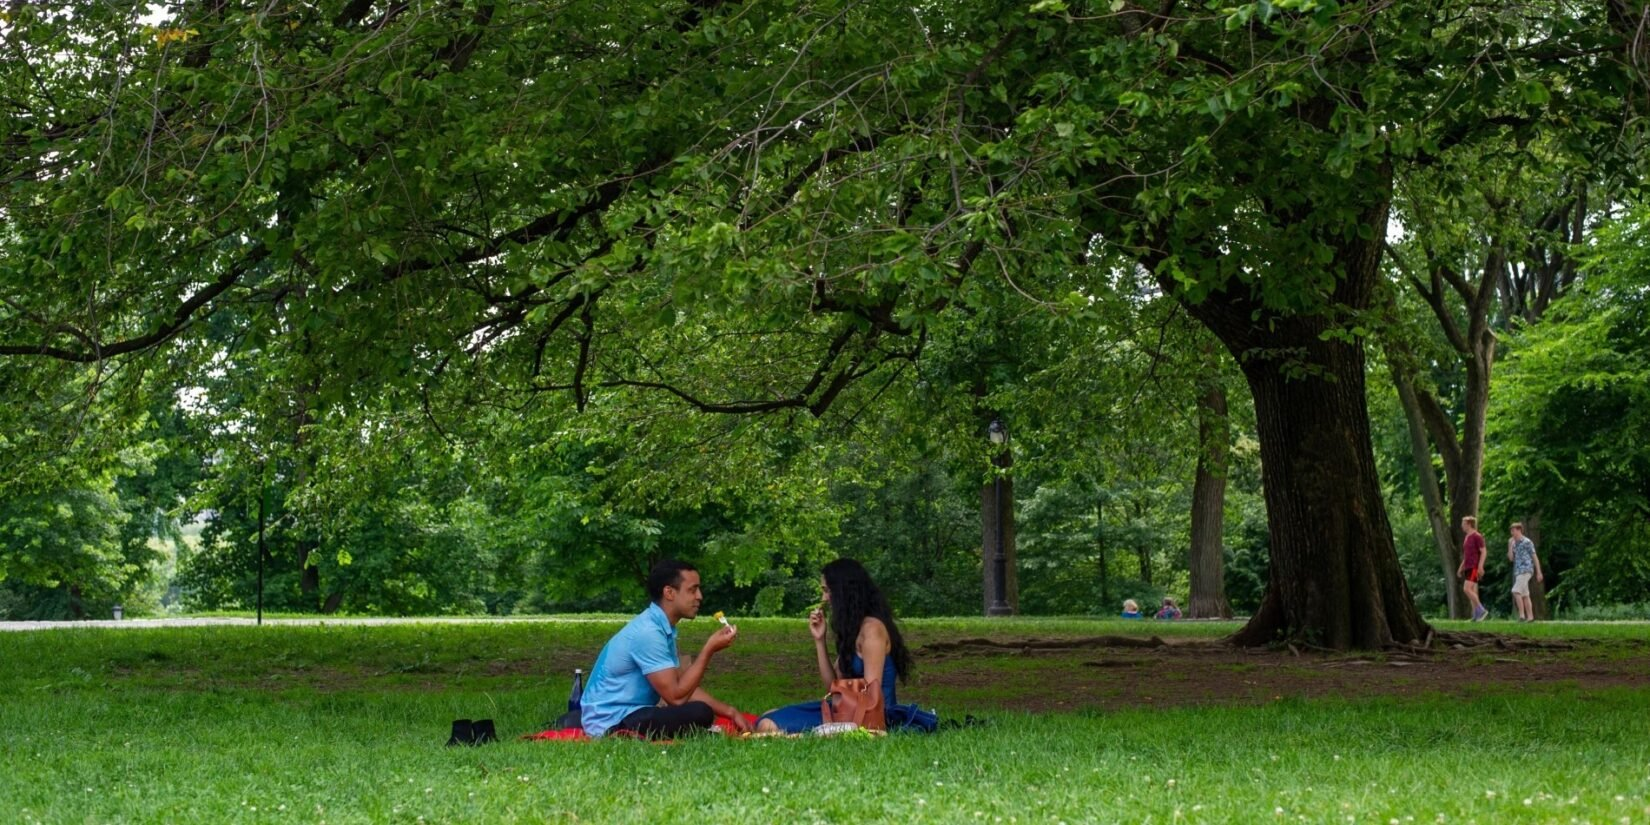 A couple enjoy the broad shade under a Park tree.